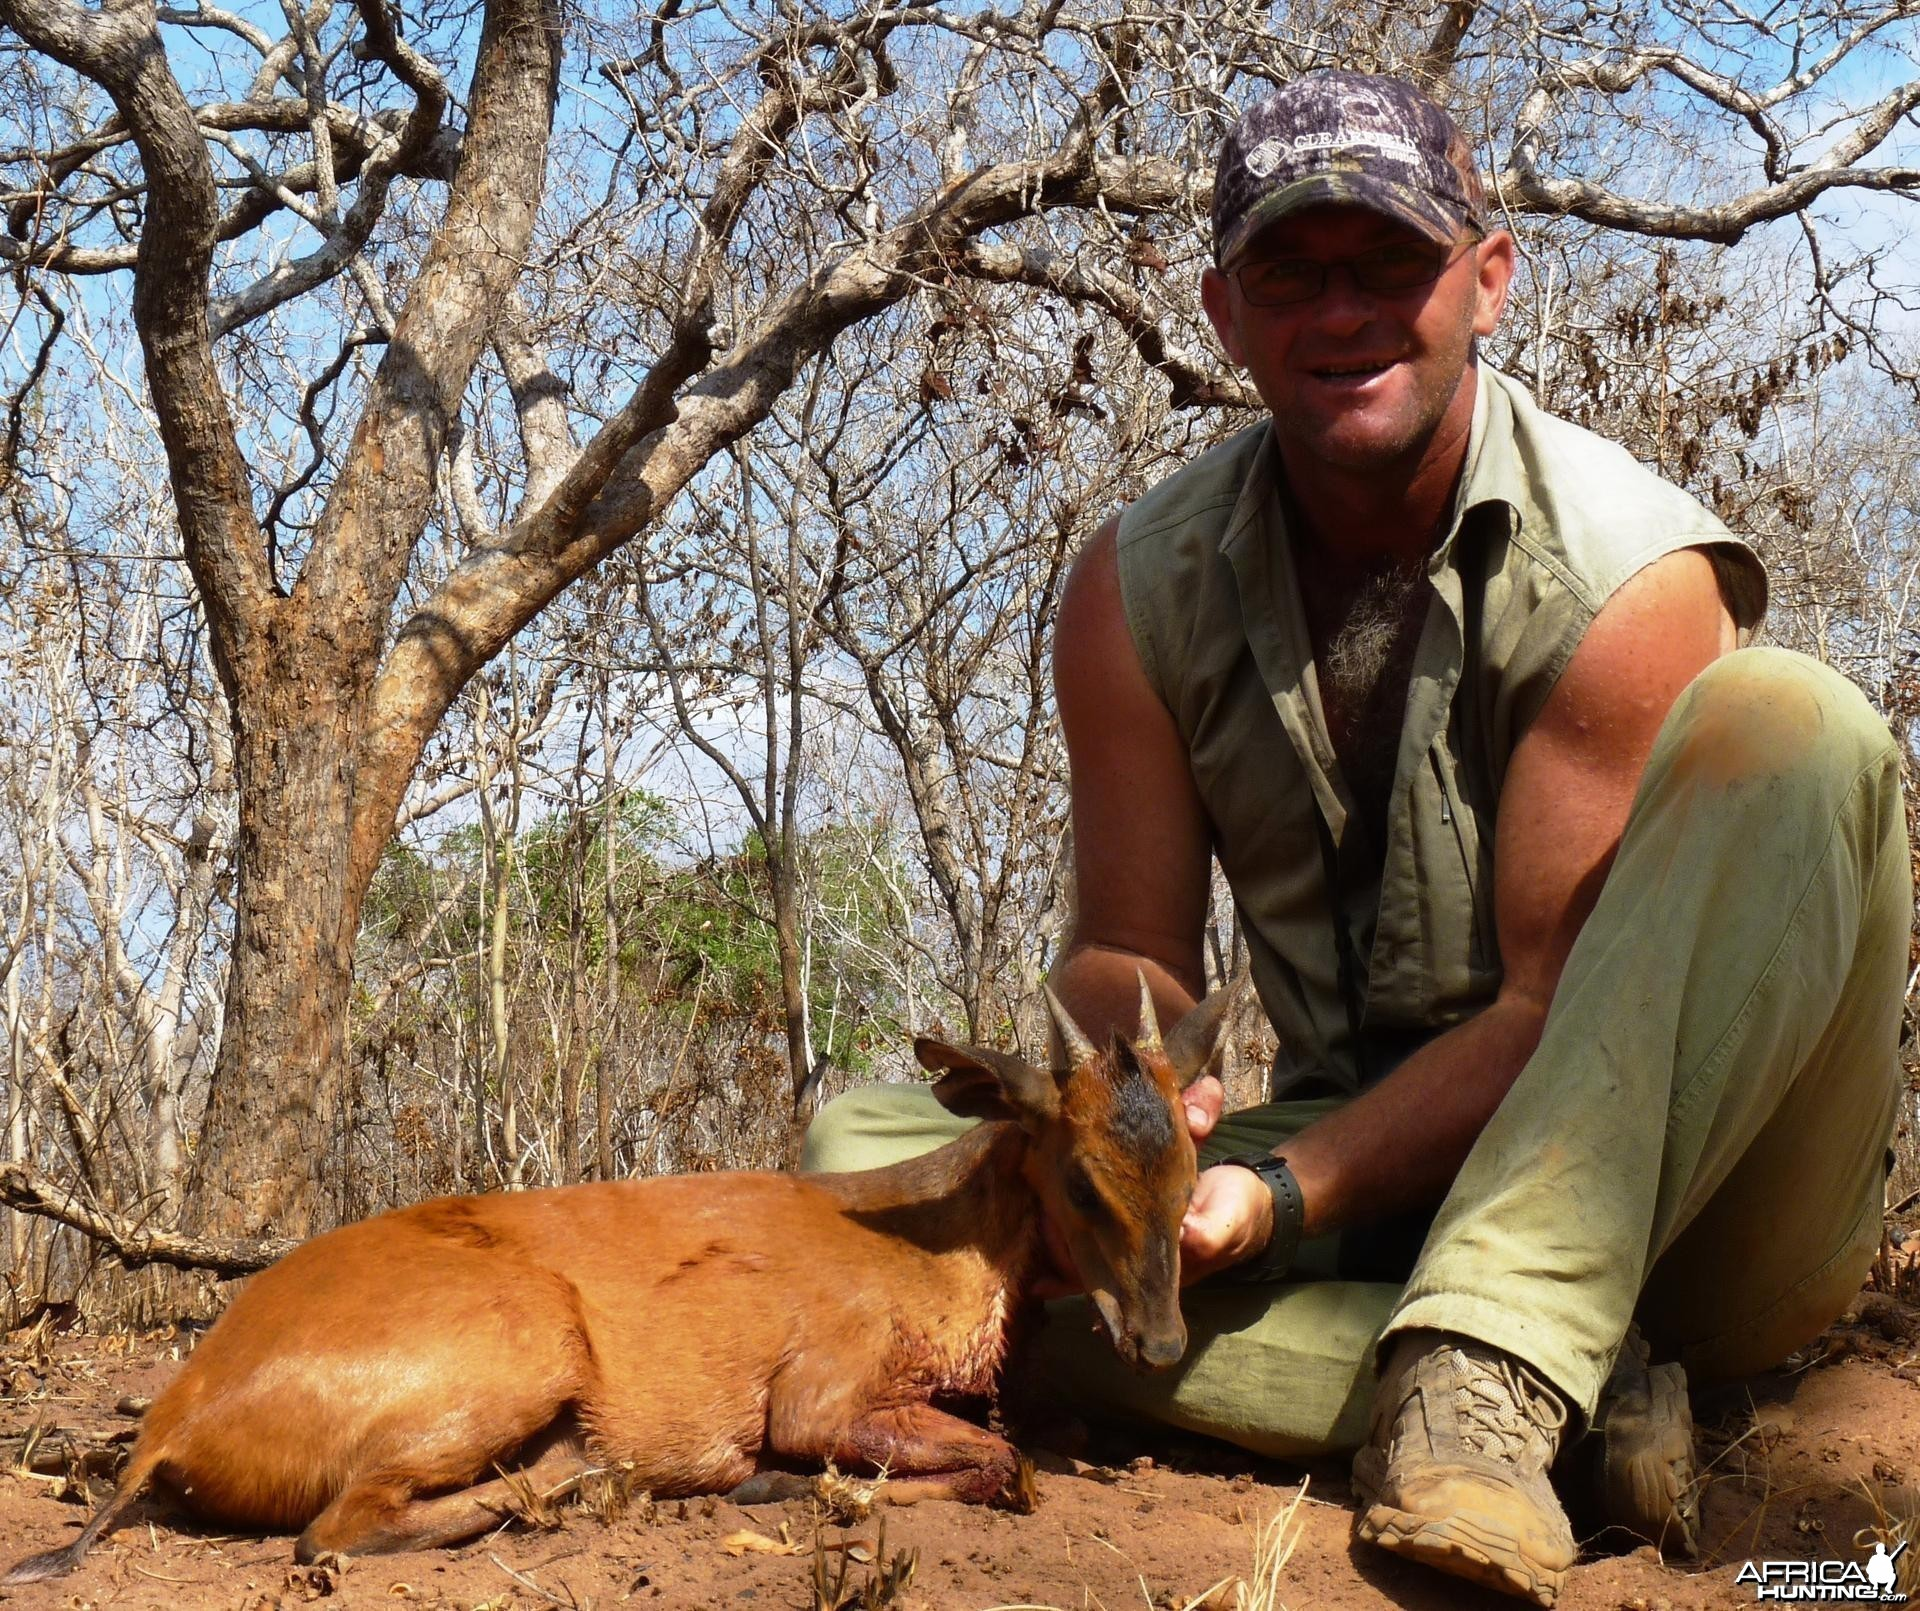 Harvey Duiker hunted in the Selous, Tanzania